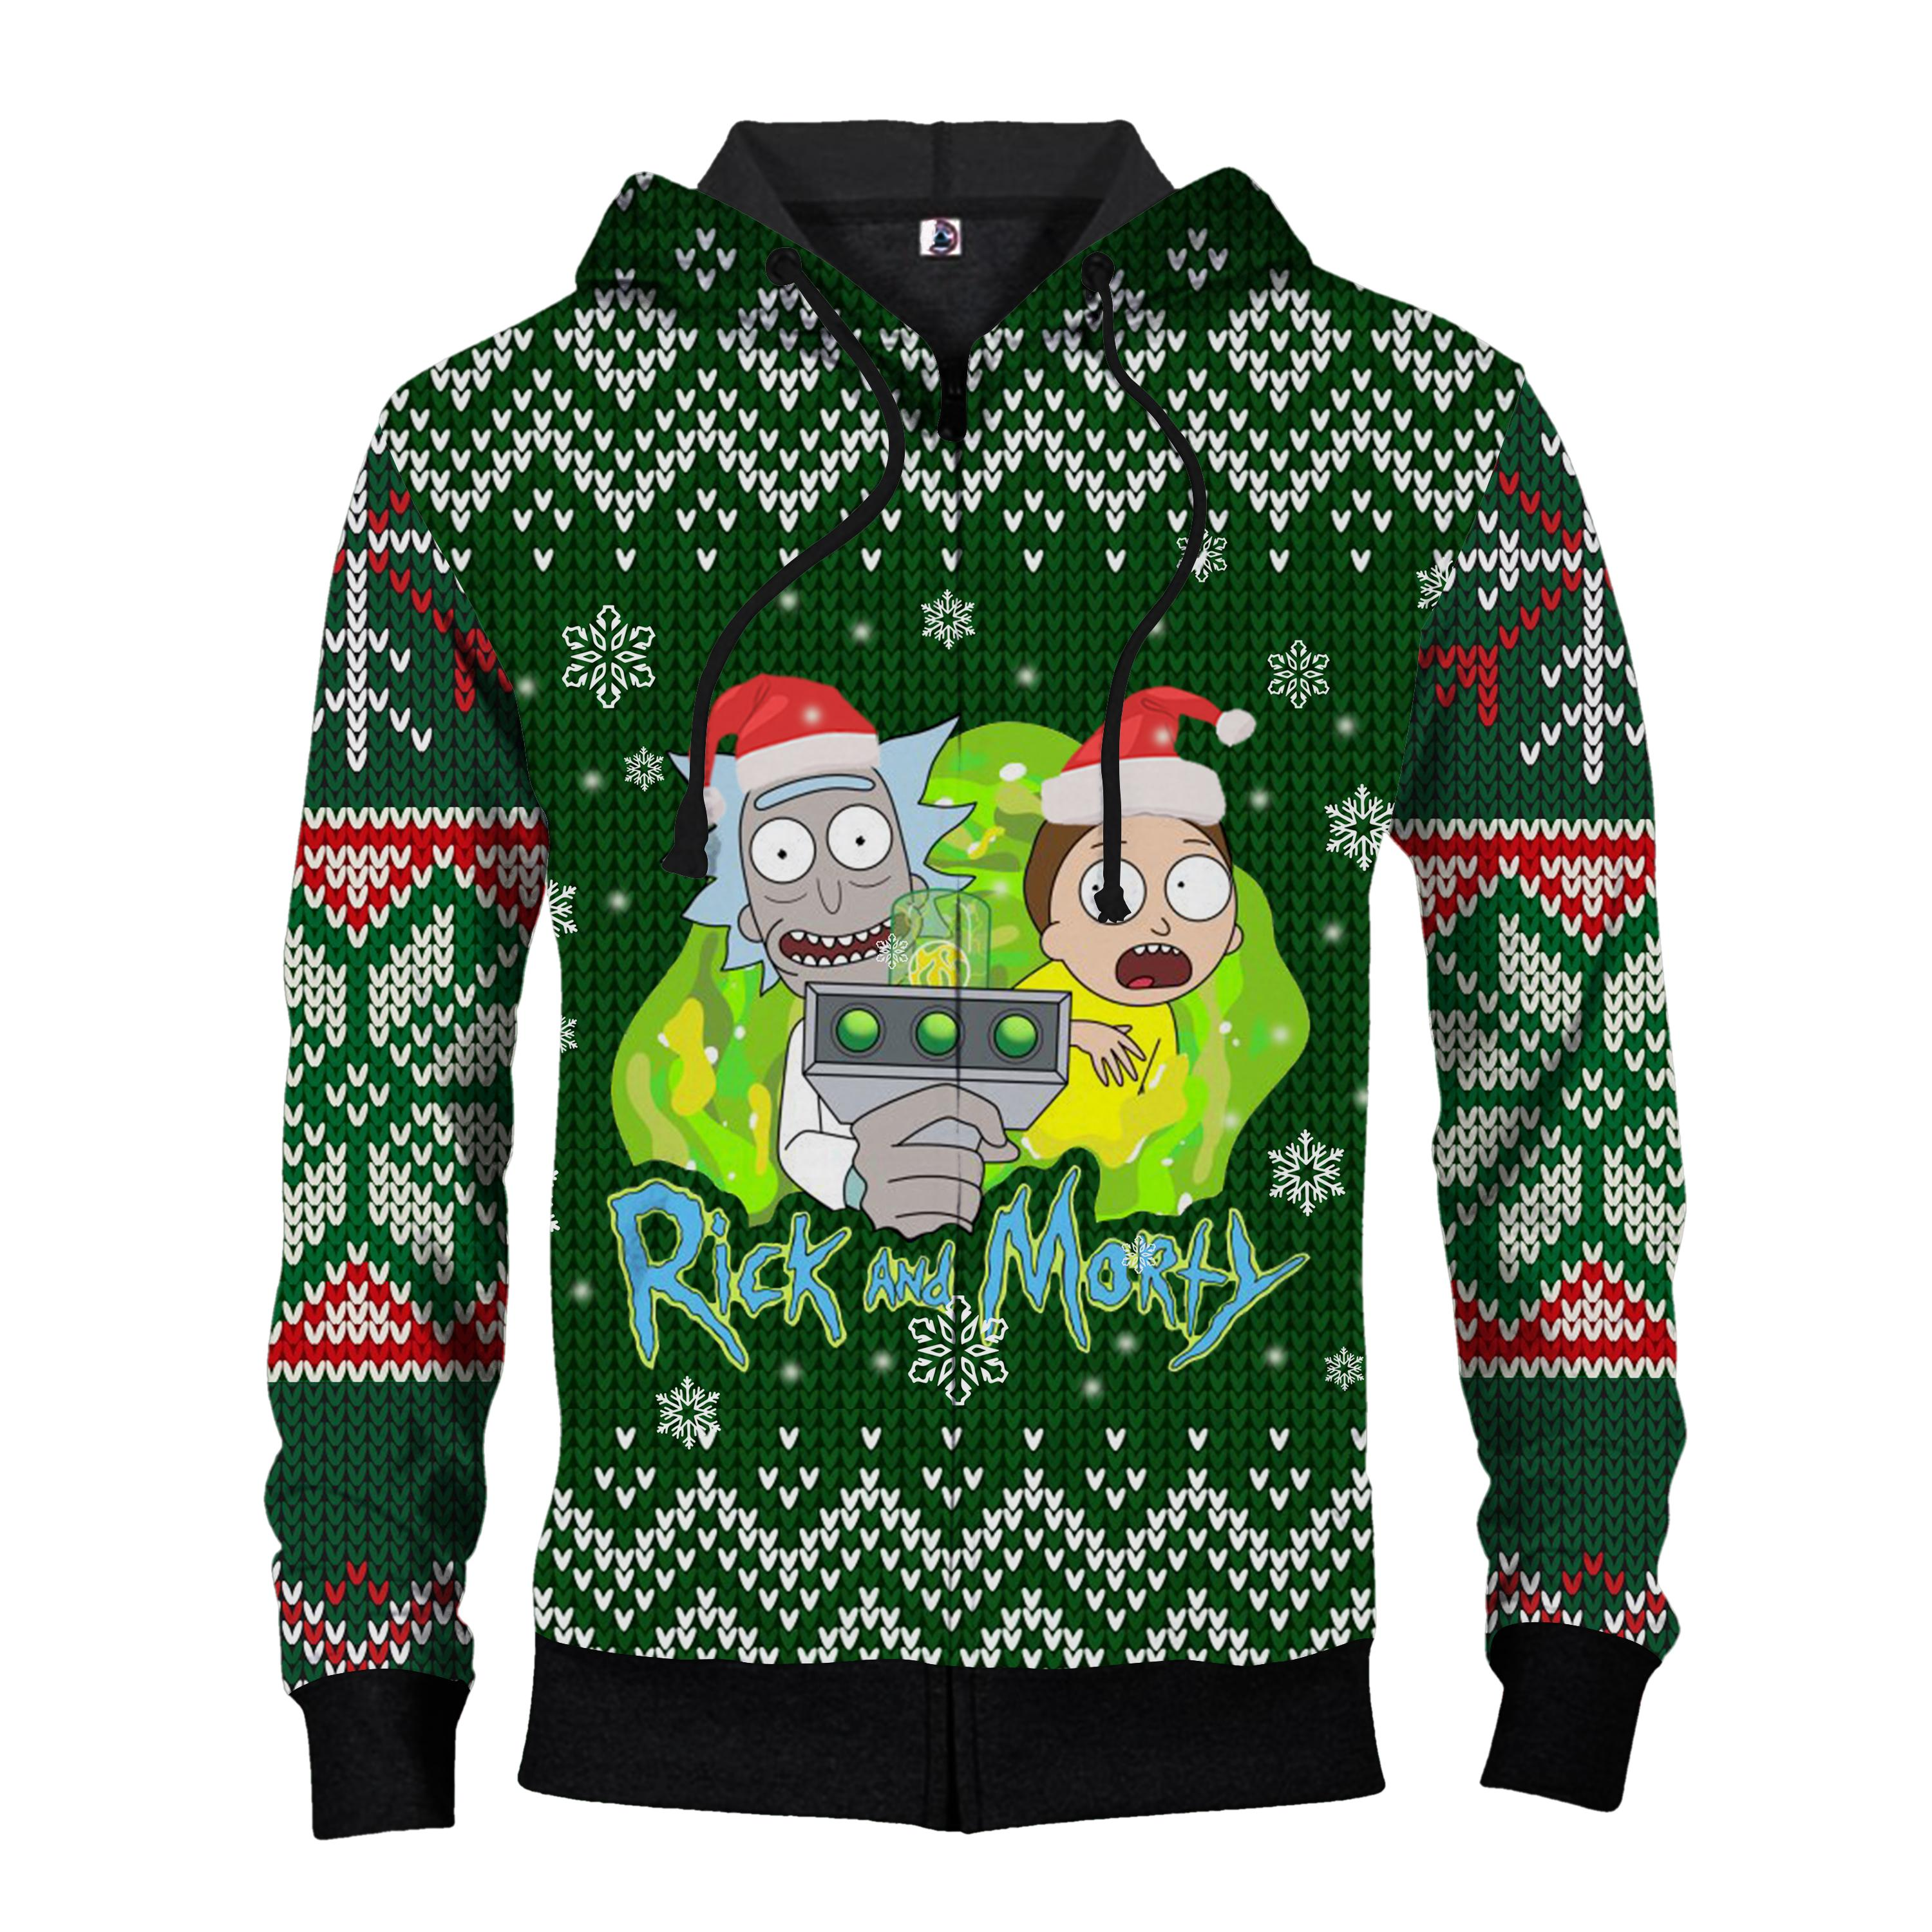 Rick and morty ugly christmas all over print ZIP HOODIE